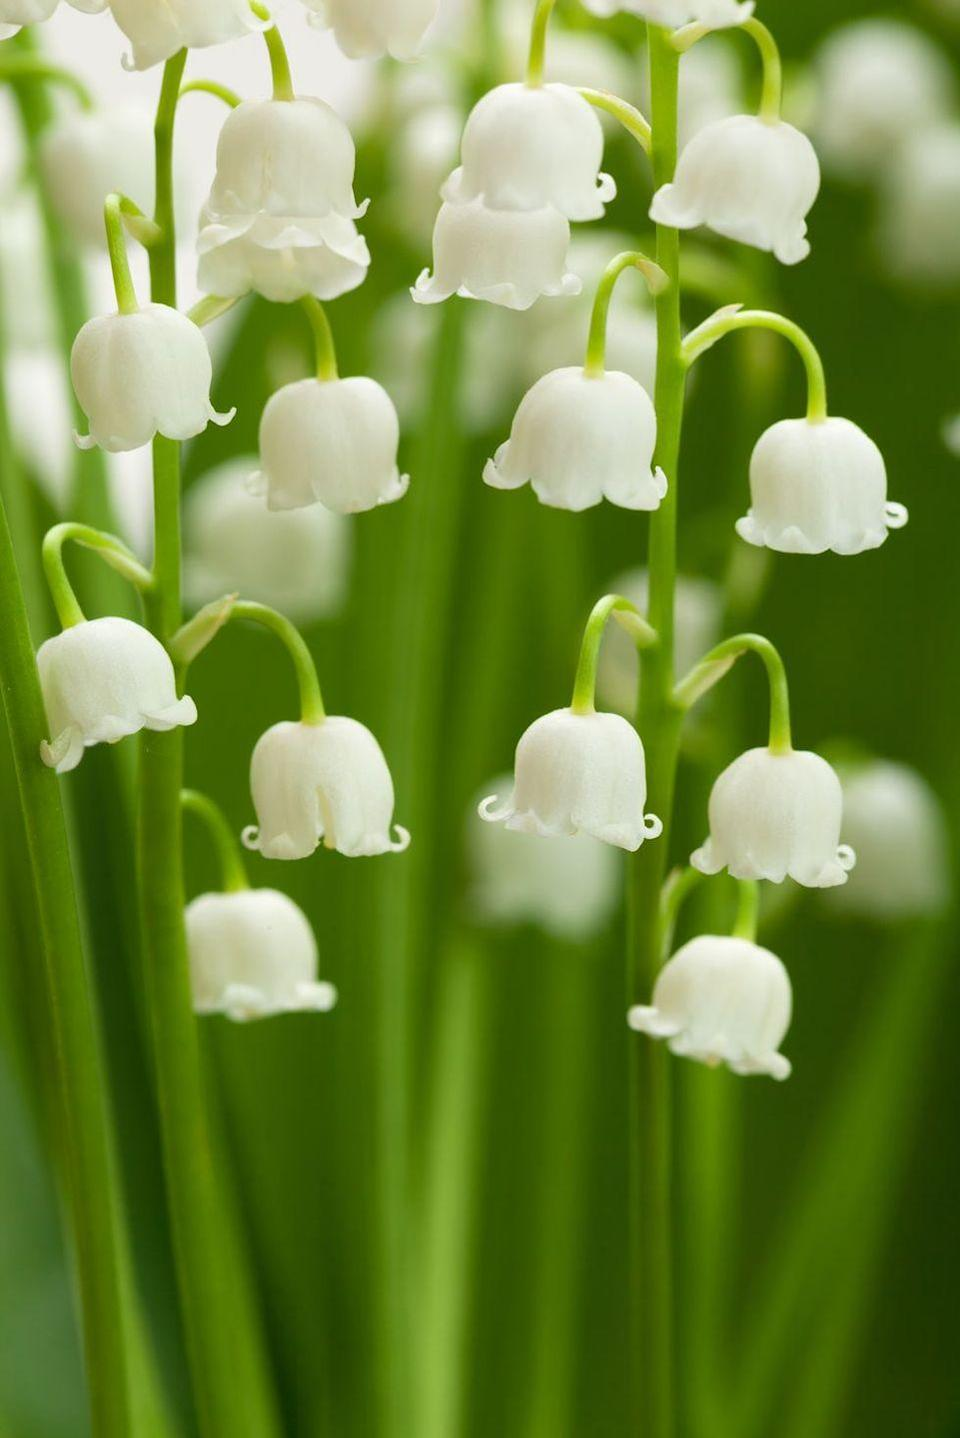 <p>These pretty little bell-shaped flowers carry a message that's just as innocent as they look. They stand for purity, happiness, luck, and humility. Though they smell delicious, don't be fooled: These flowers aren't edible.</p>